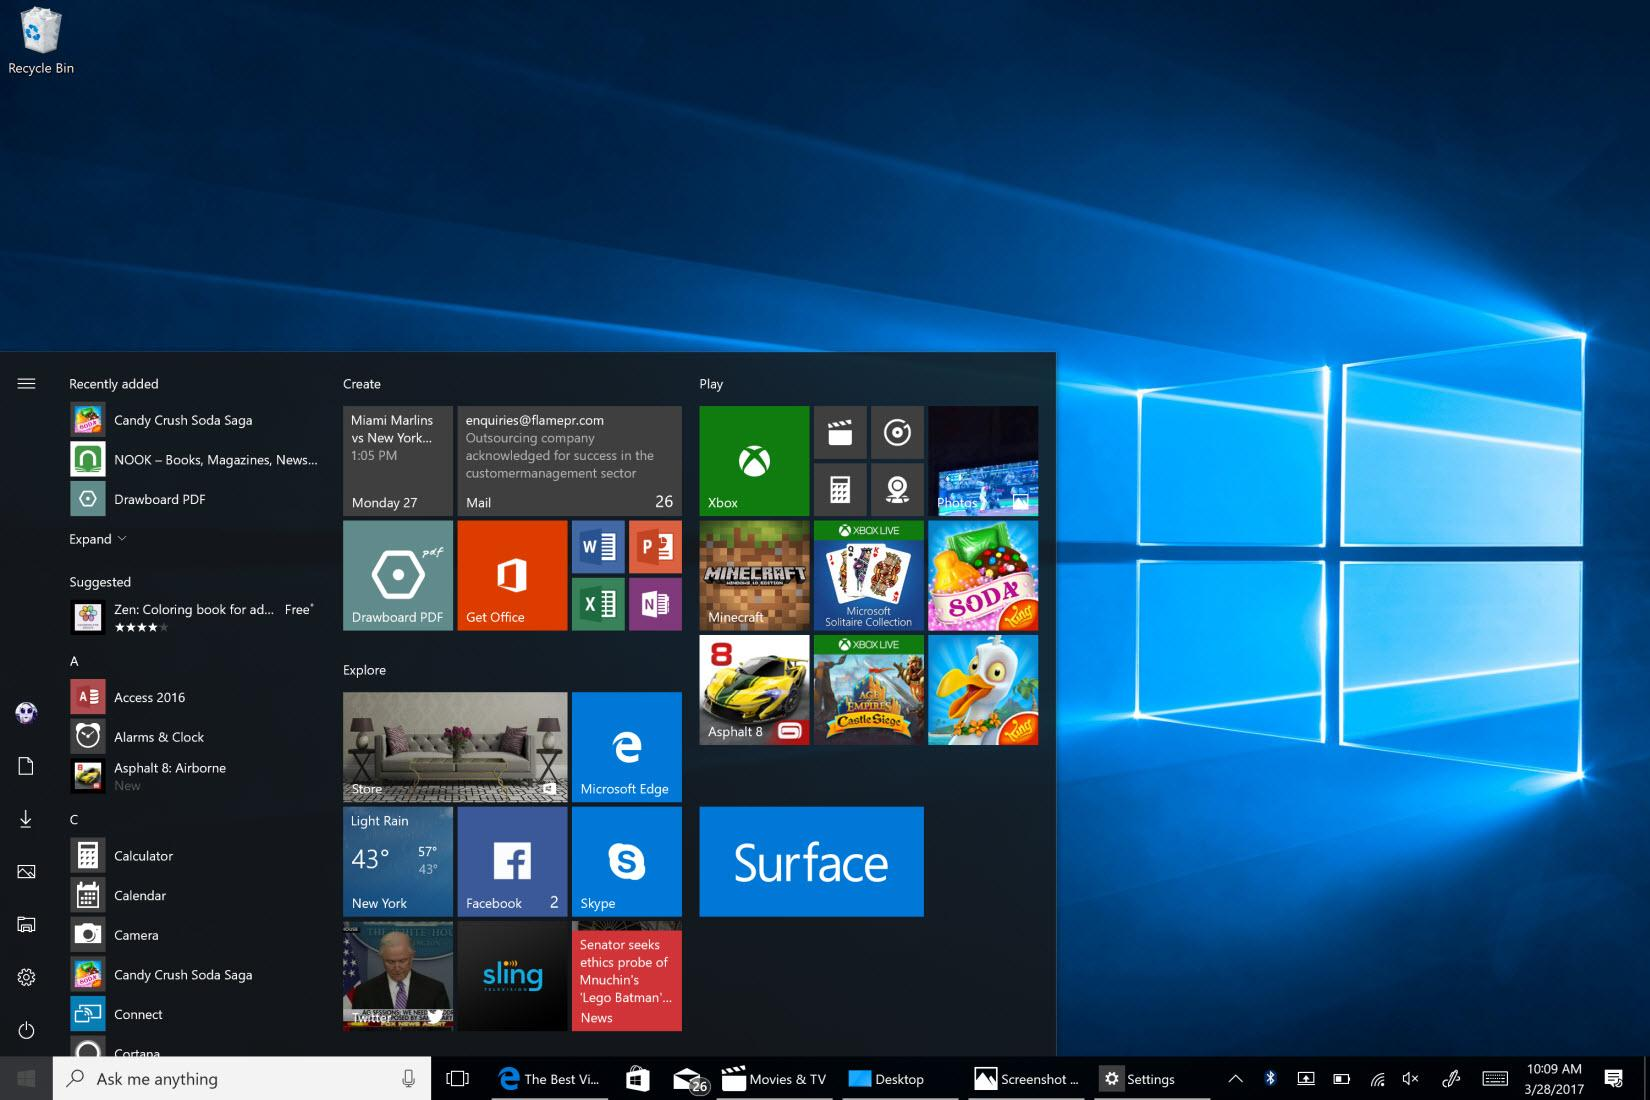 Windows 10 free upgrade is still available through this handy loophole | Trusted Reviews